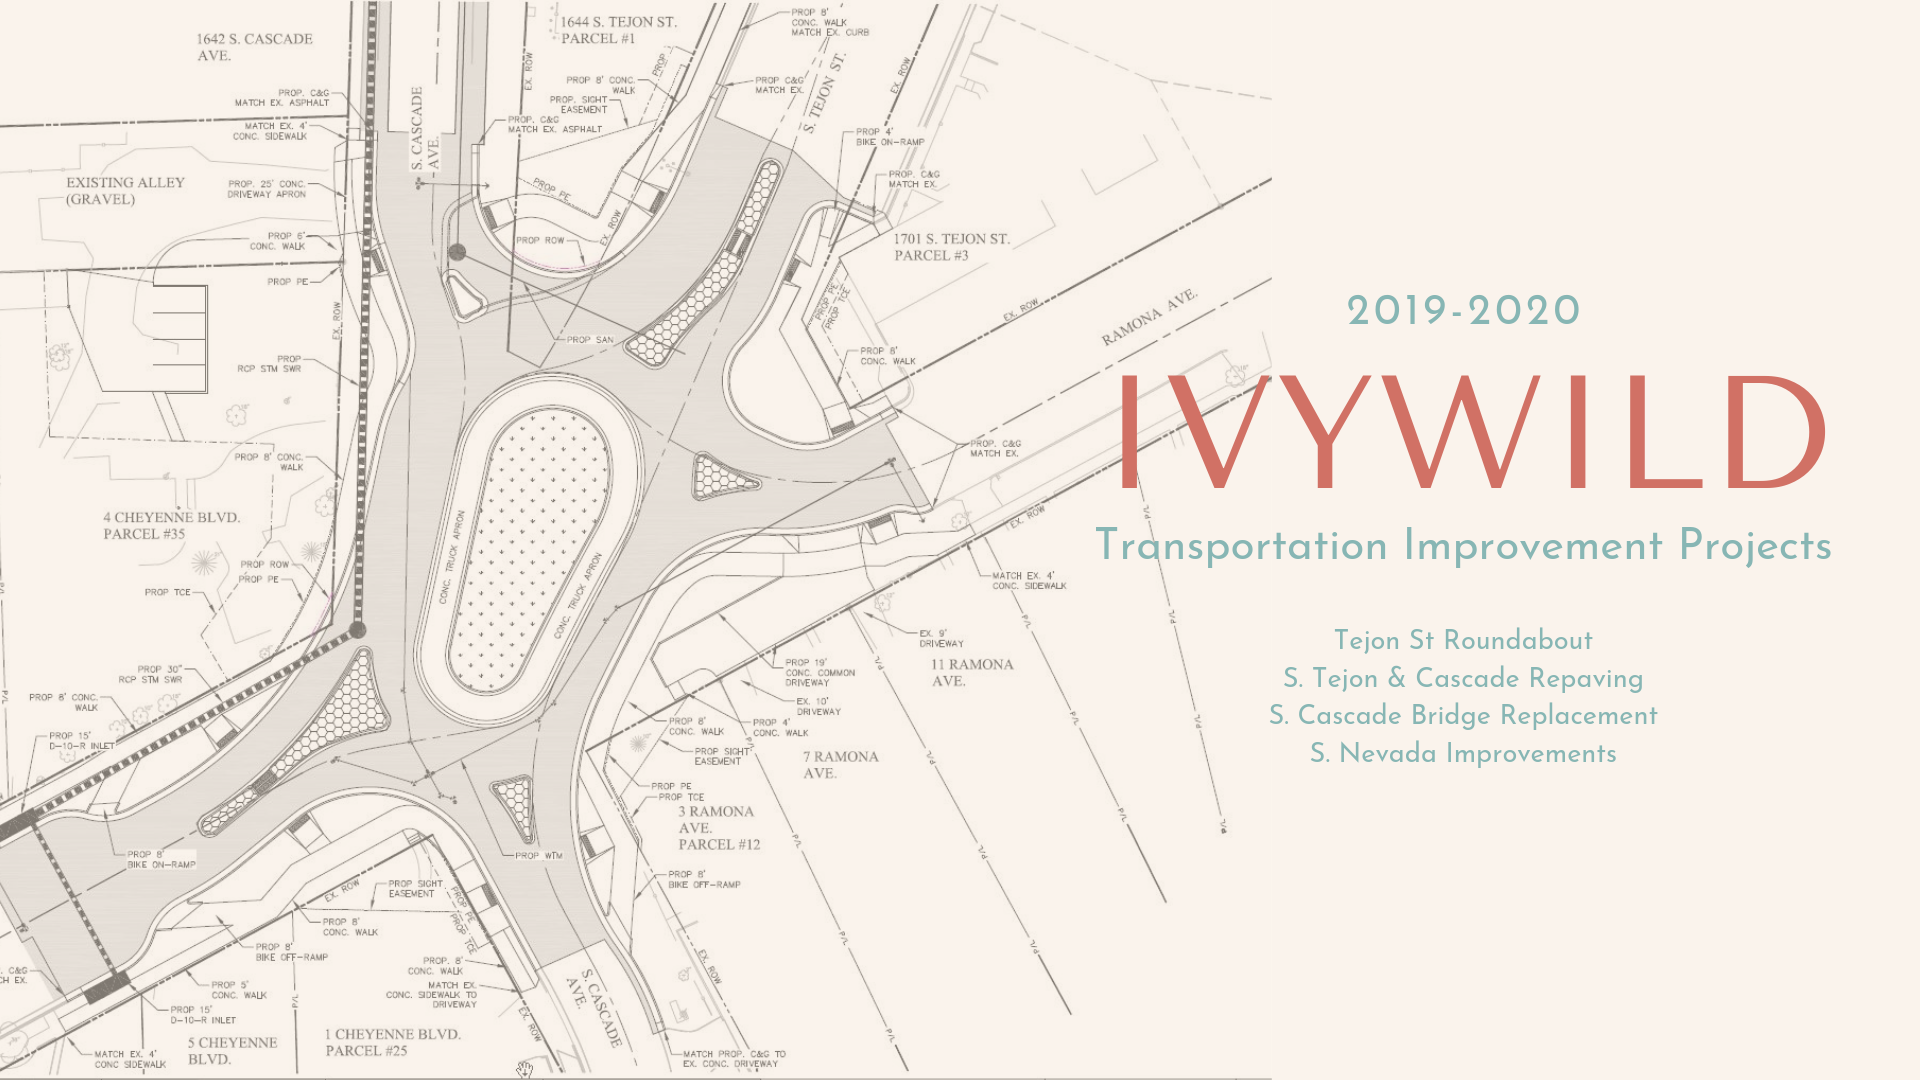 Ivywild Transportation Improvements